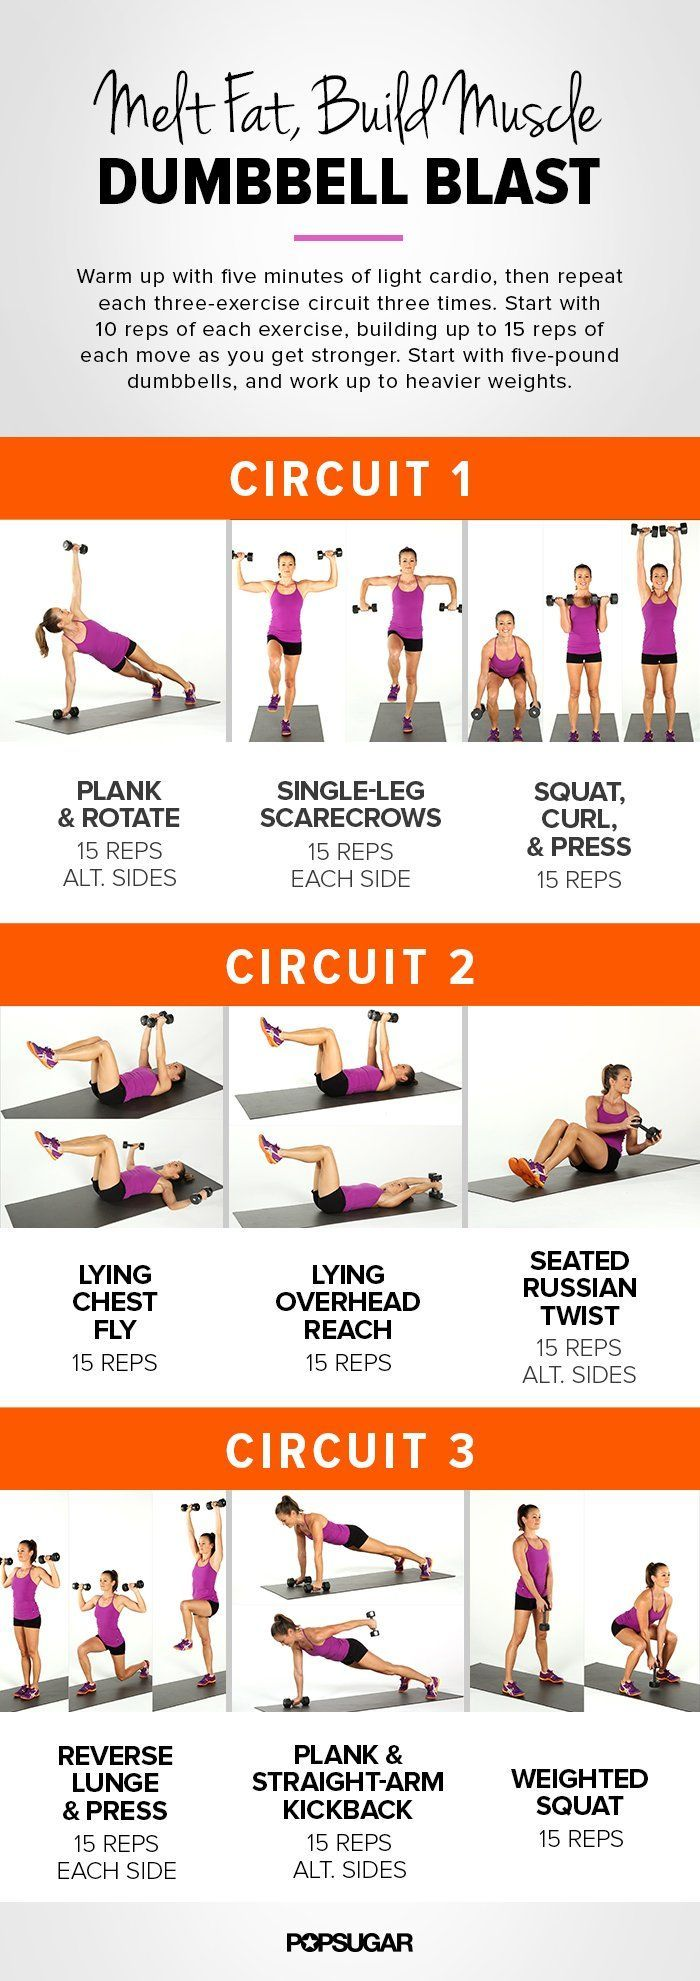 Fitness, Health & Well-Being | Incinerate Fat and Build Muscle With This Kickass Workout | POPSUGAR Fitness